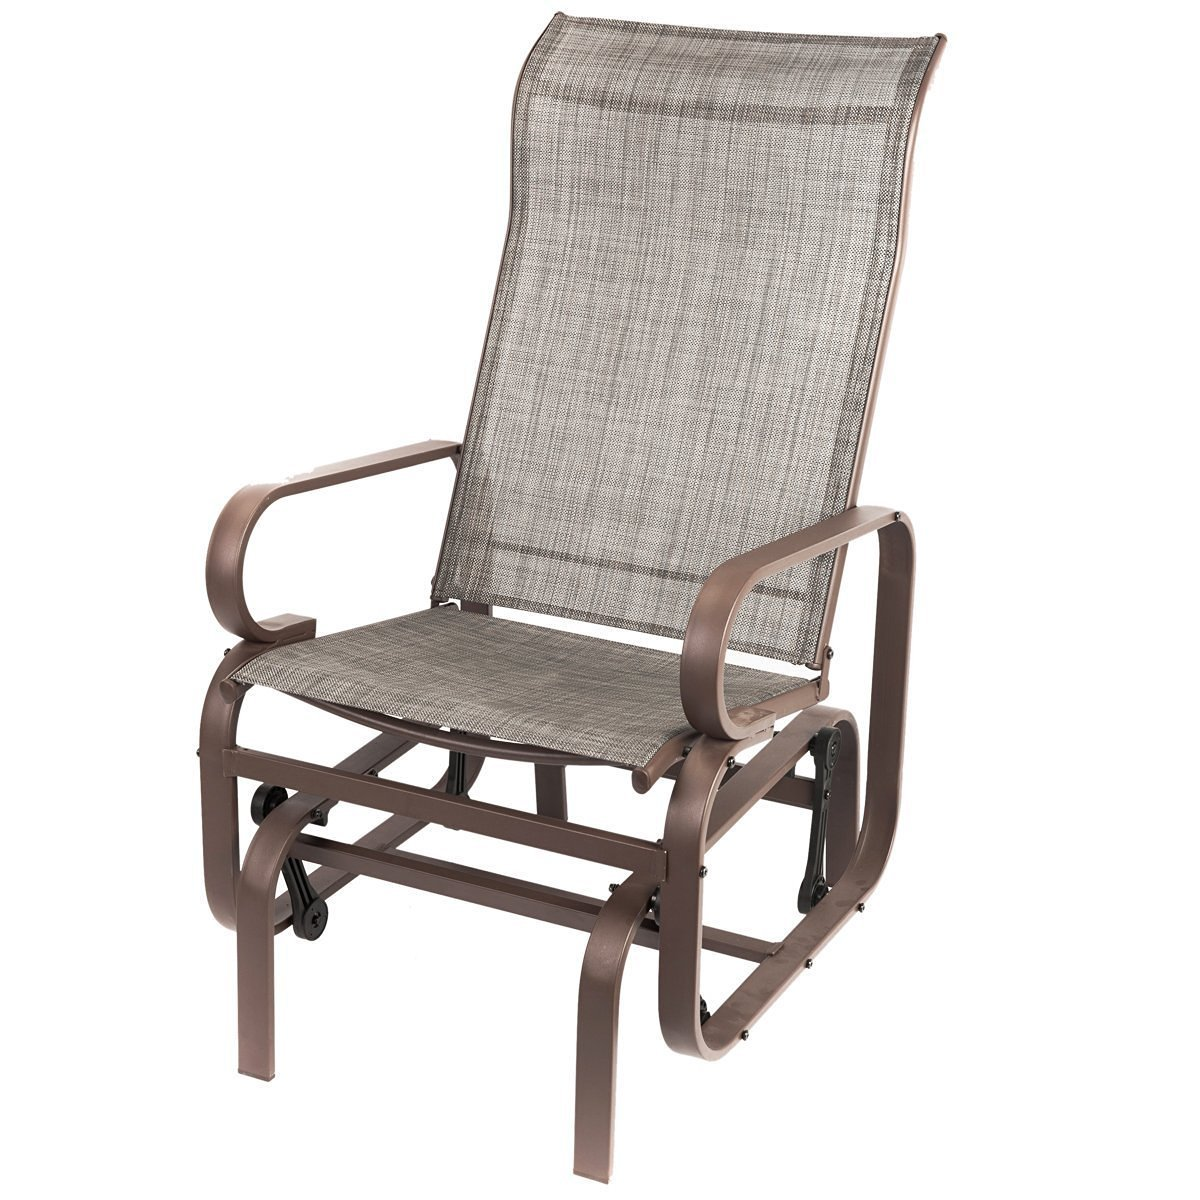 Naturefun Outdoor Patio Rocker Chair, Balcony Glider Rocking Lounge Chair,  All Weatherproof, Gray